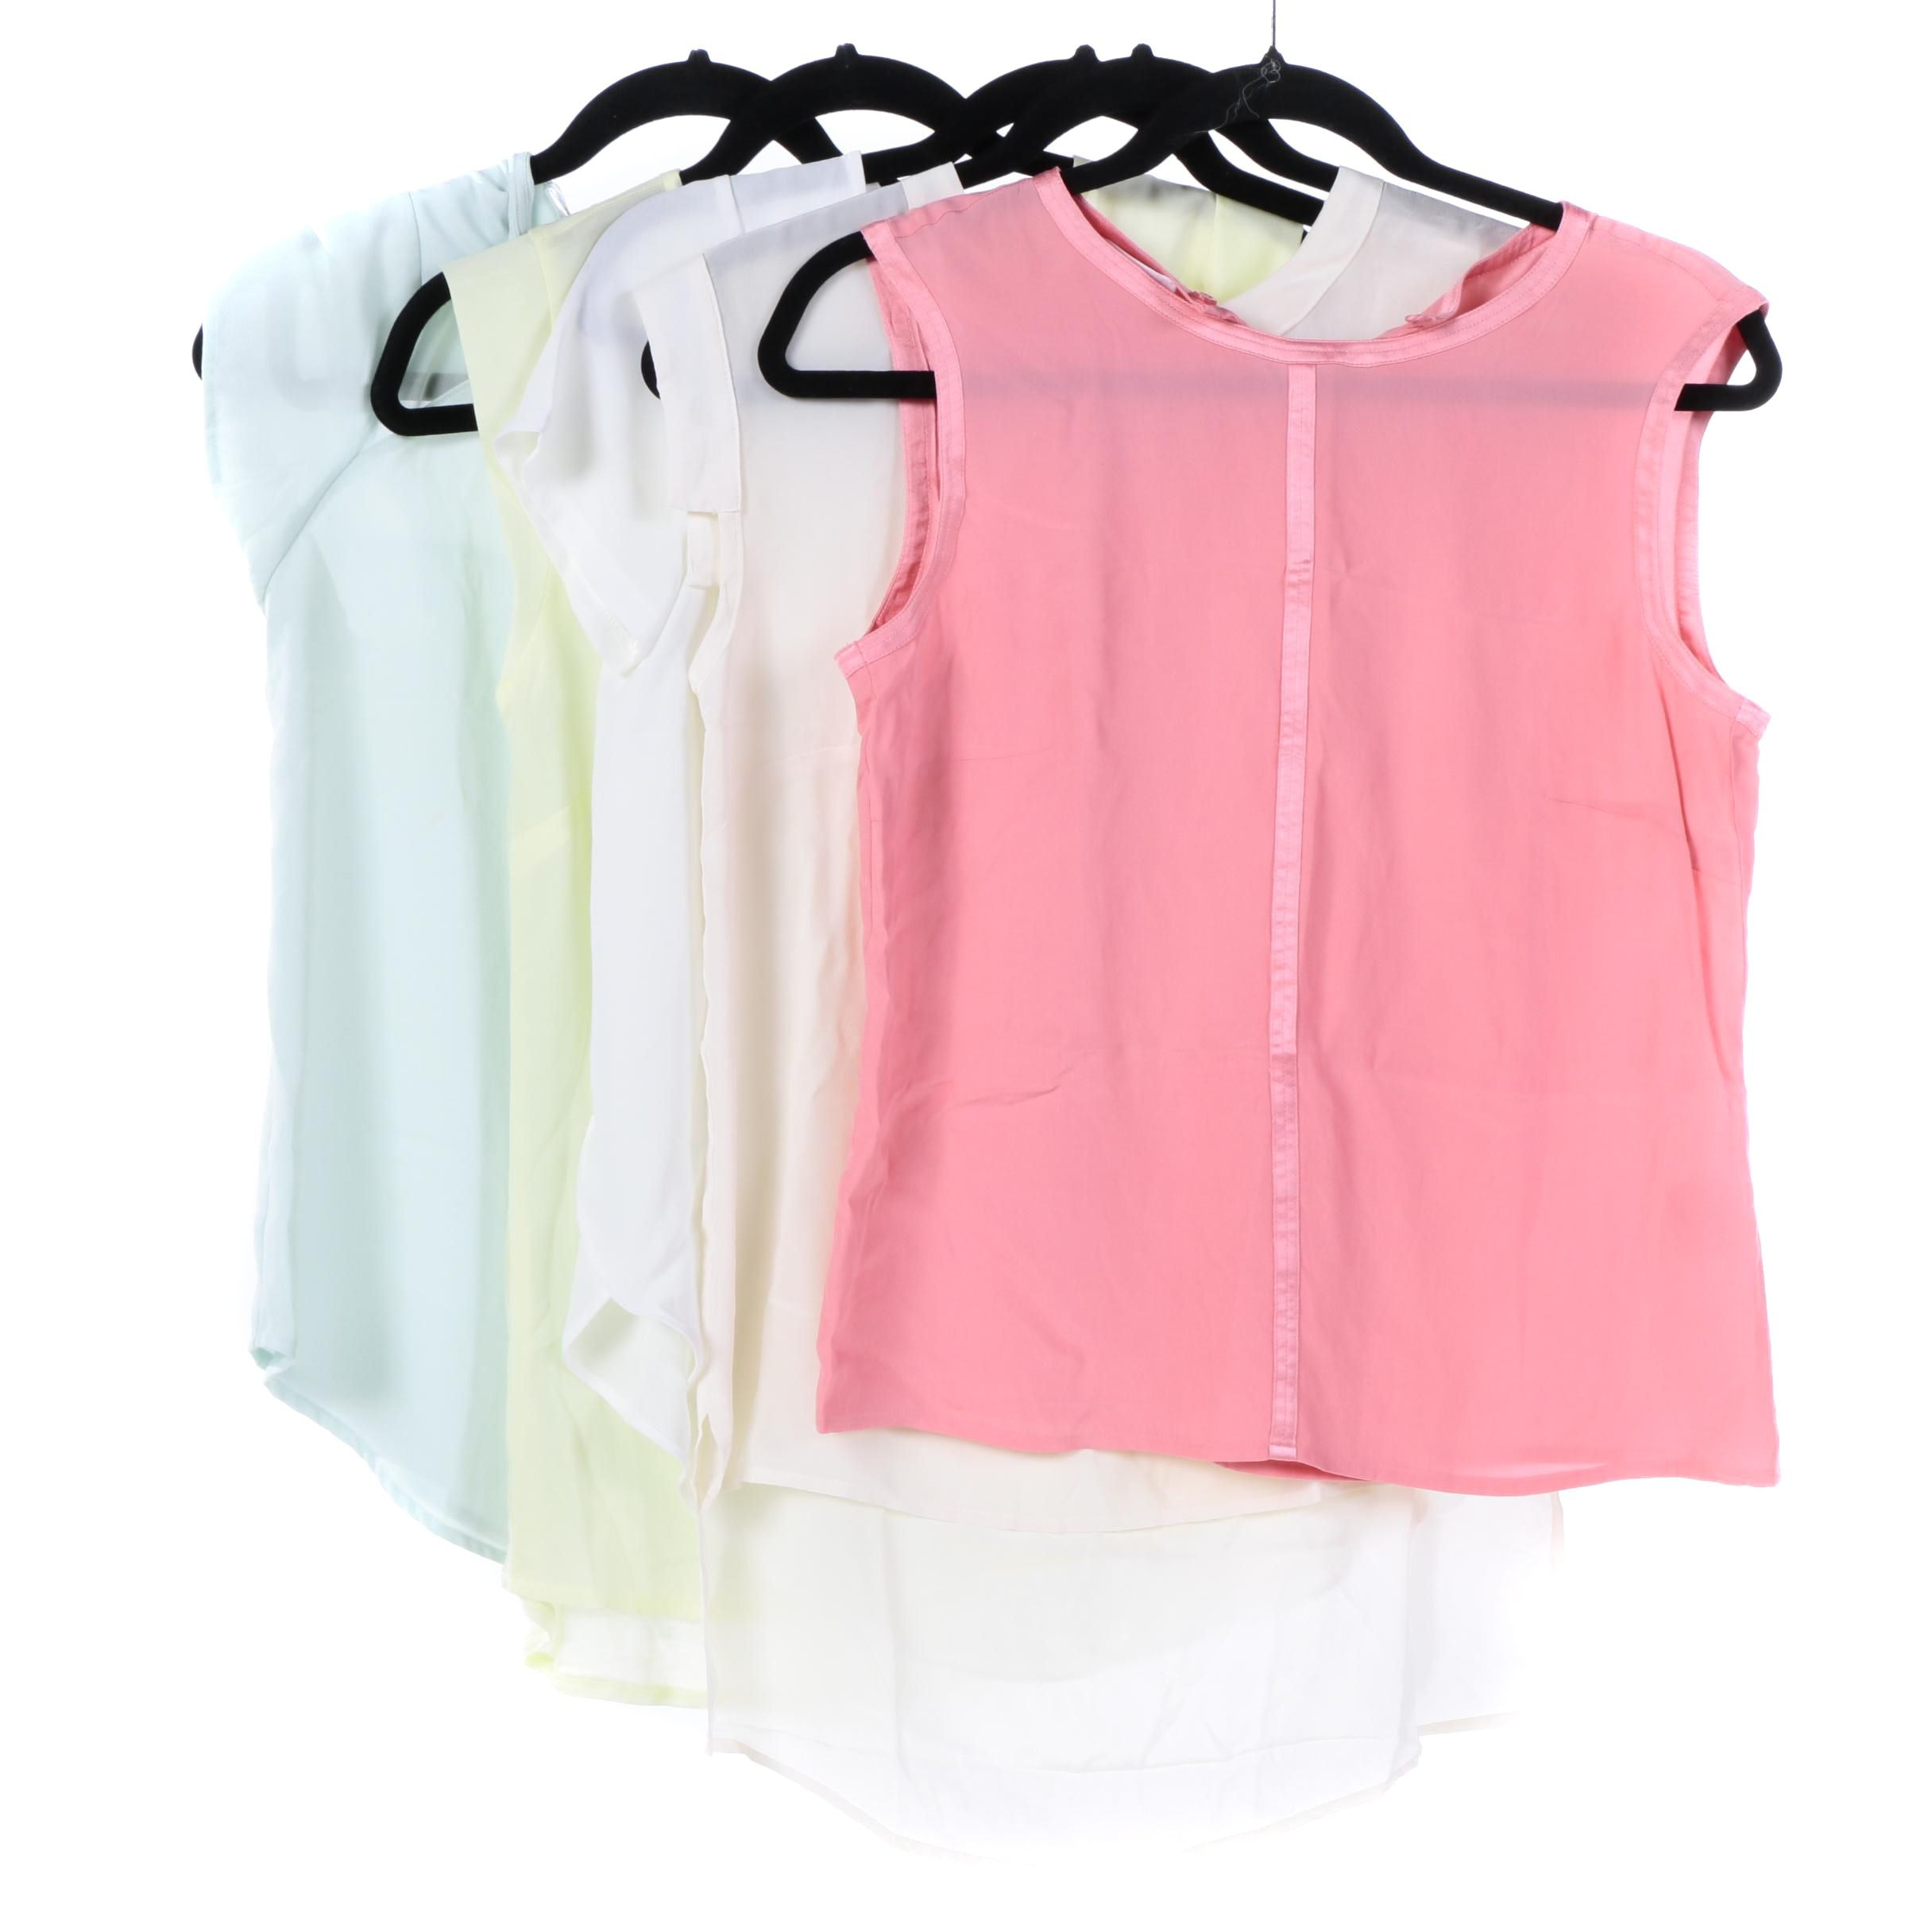 Women's Chiffon Tops Including Escada and French Connection